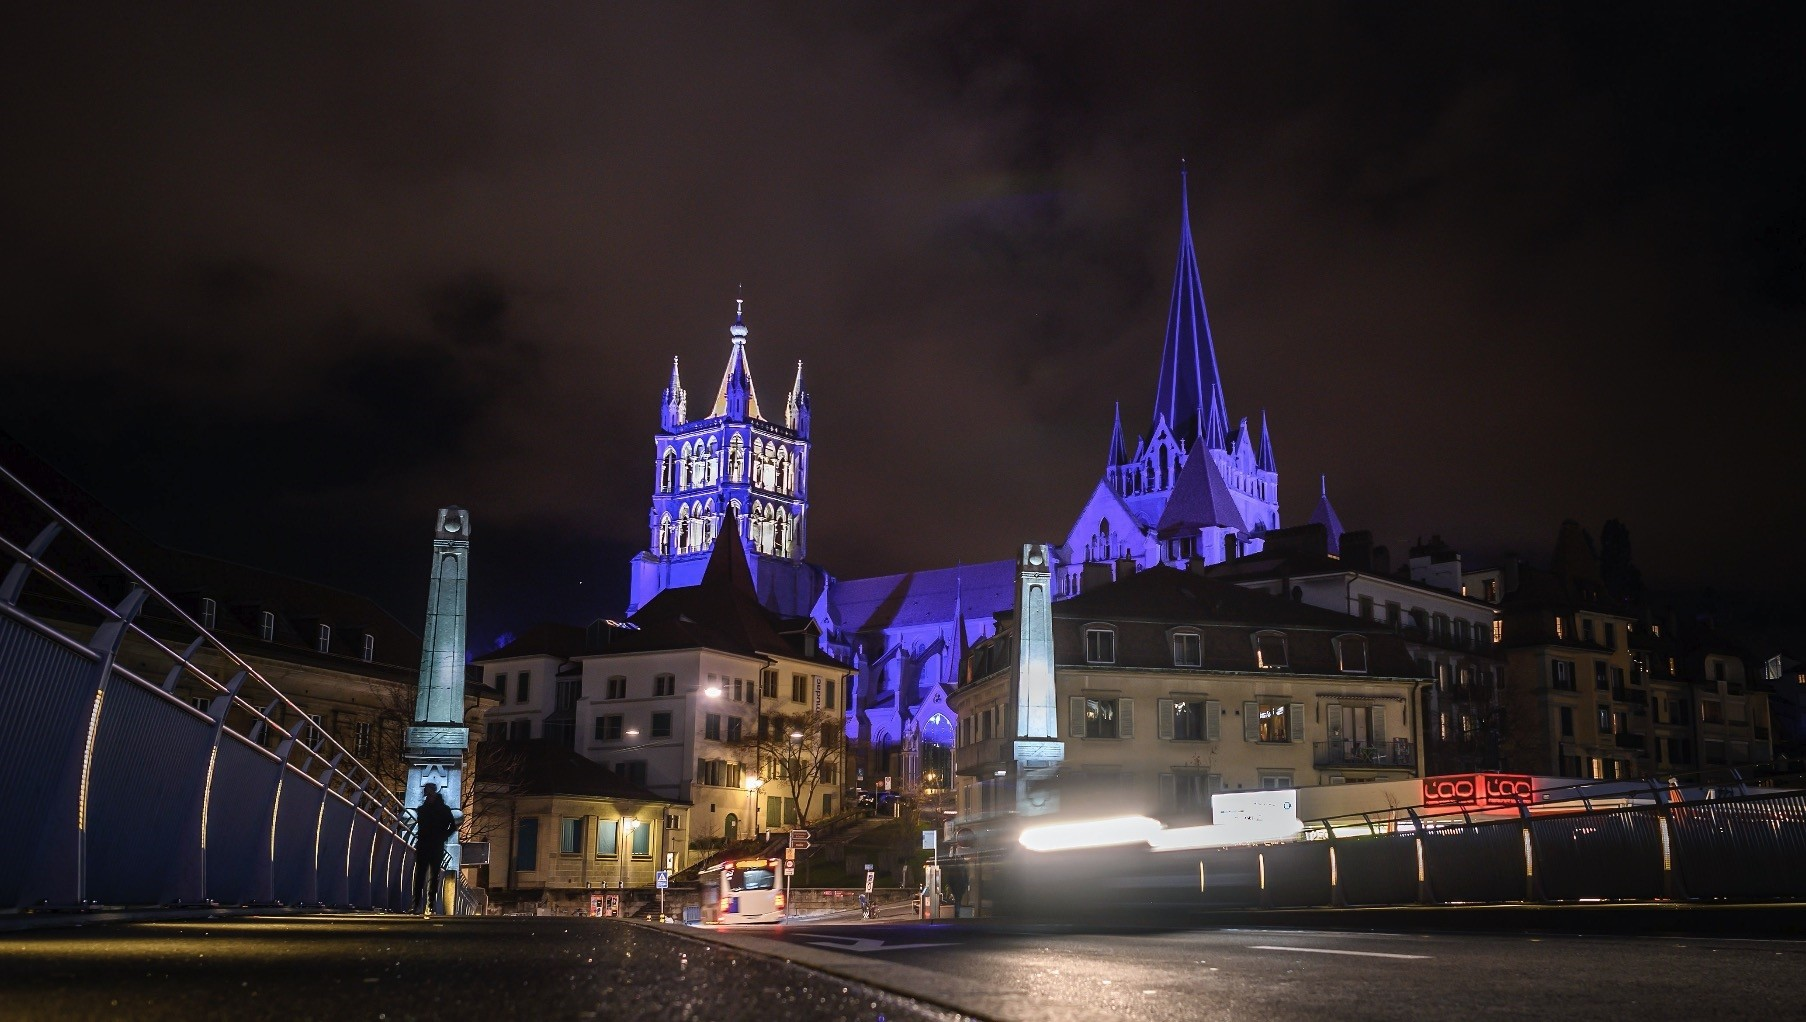 Every evening, the night watchman clambers to the top of the Lausanne cathedral bell tower and gets to work: he shouts out the time each hour, keeping a six-century-old tradition alive.